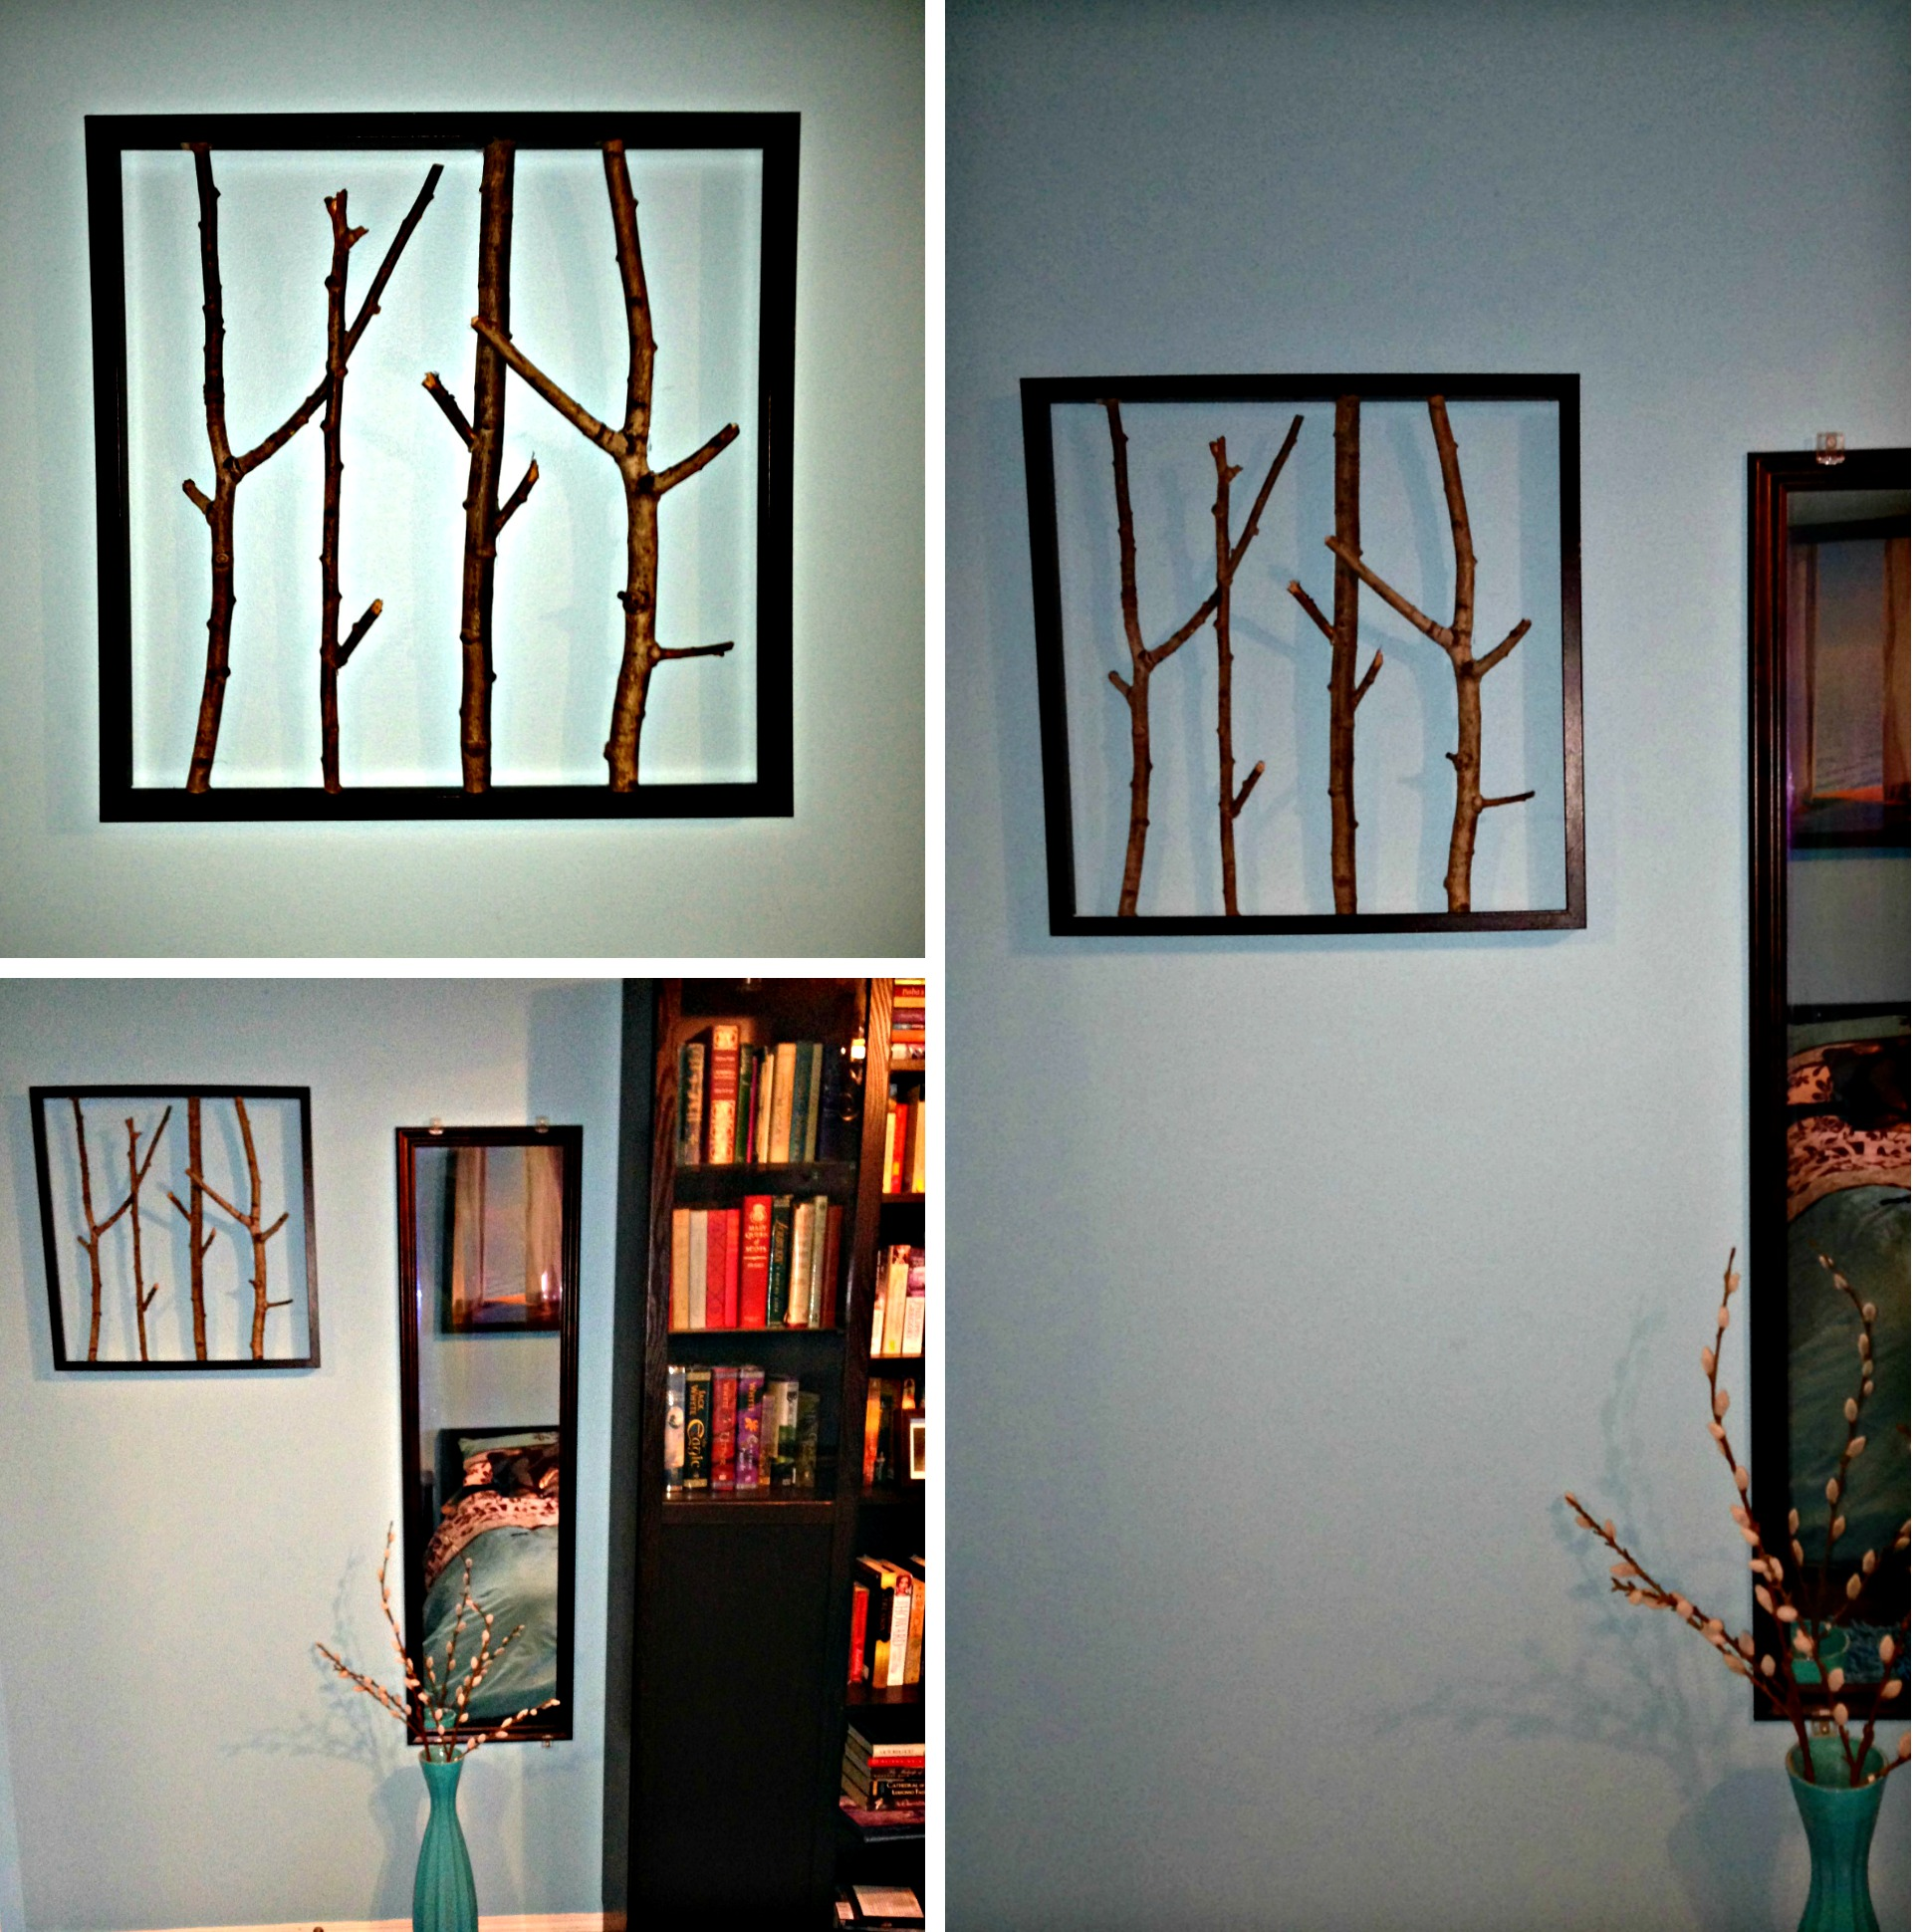 Easy Framed Branches Wall Art Makes A Lovely Addition to Blue Room Decor. #wallart #framedbranches #blue #bedroom